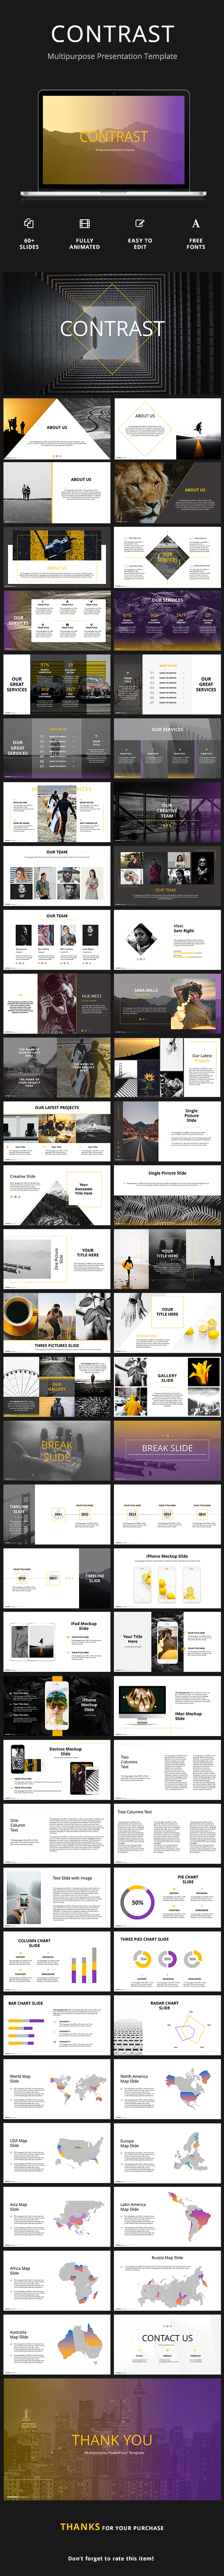 GraphicRiver Contrast Creative Powerpoint Template 20941561